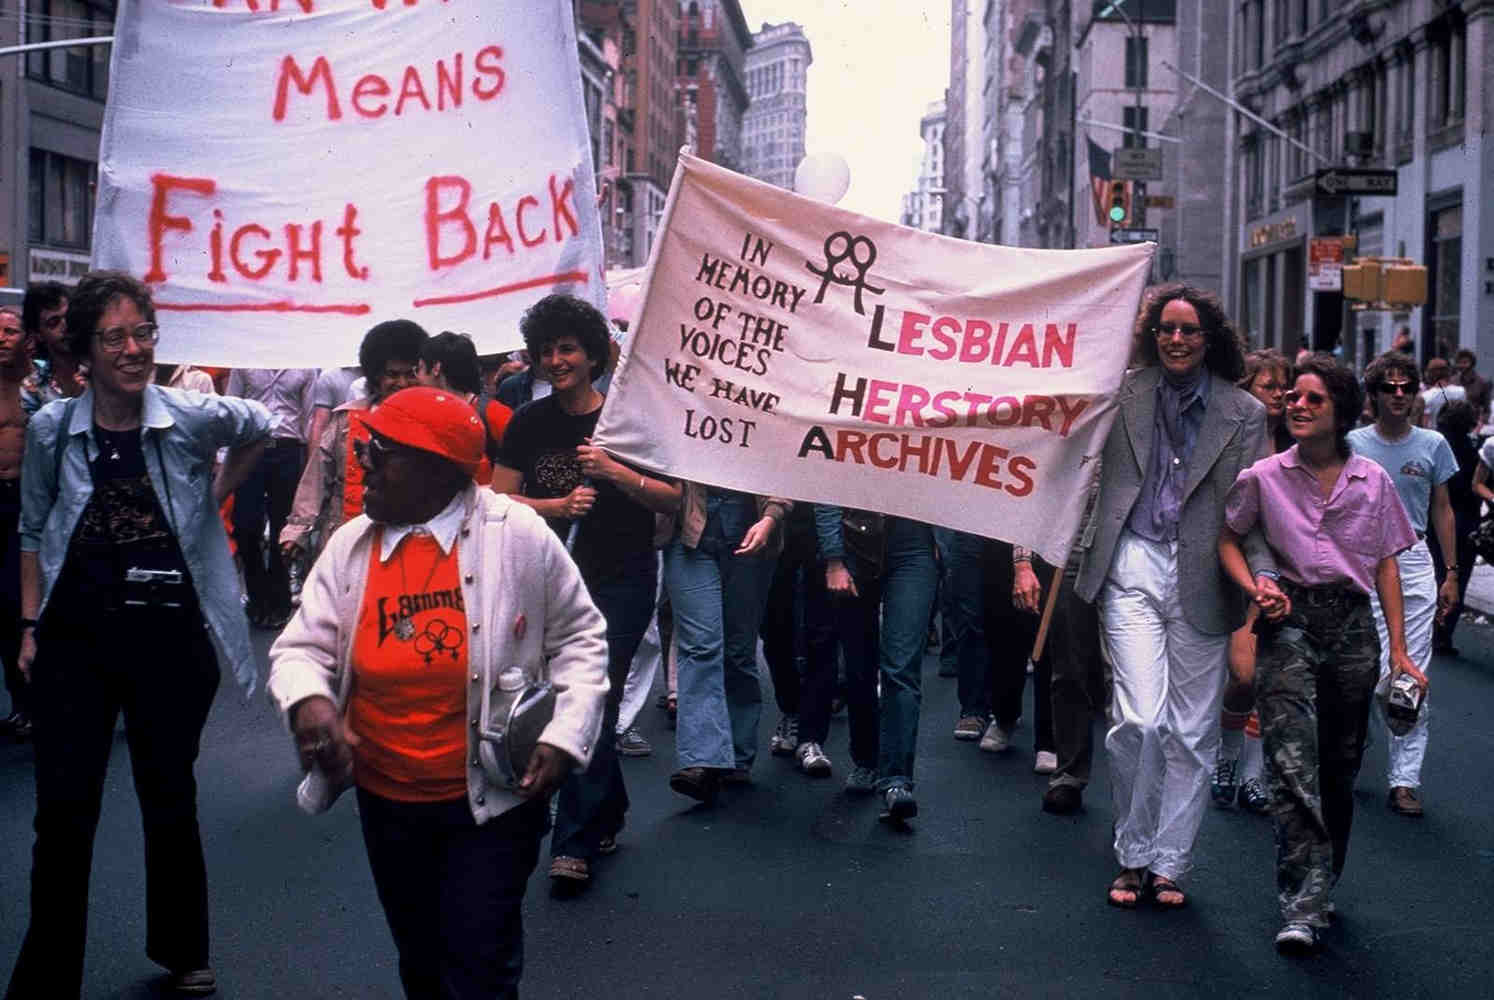 Lesbian_Herstory_Archives_Gay_Pride_1980s - joan nestle blog - edel, nestle and mabel hampton in photo 2